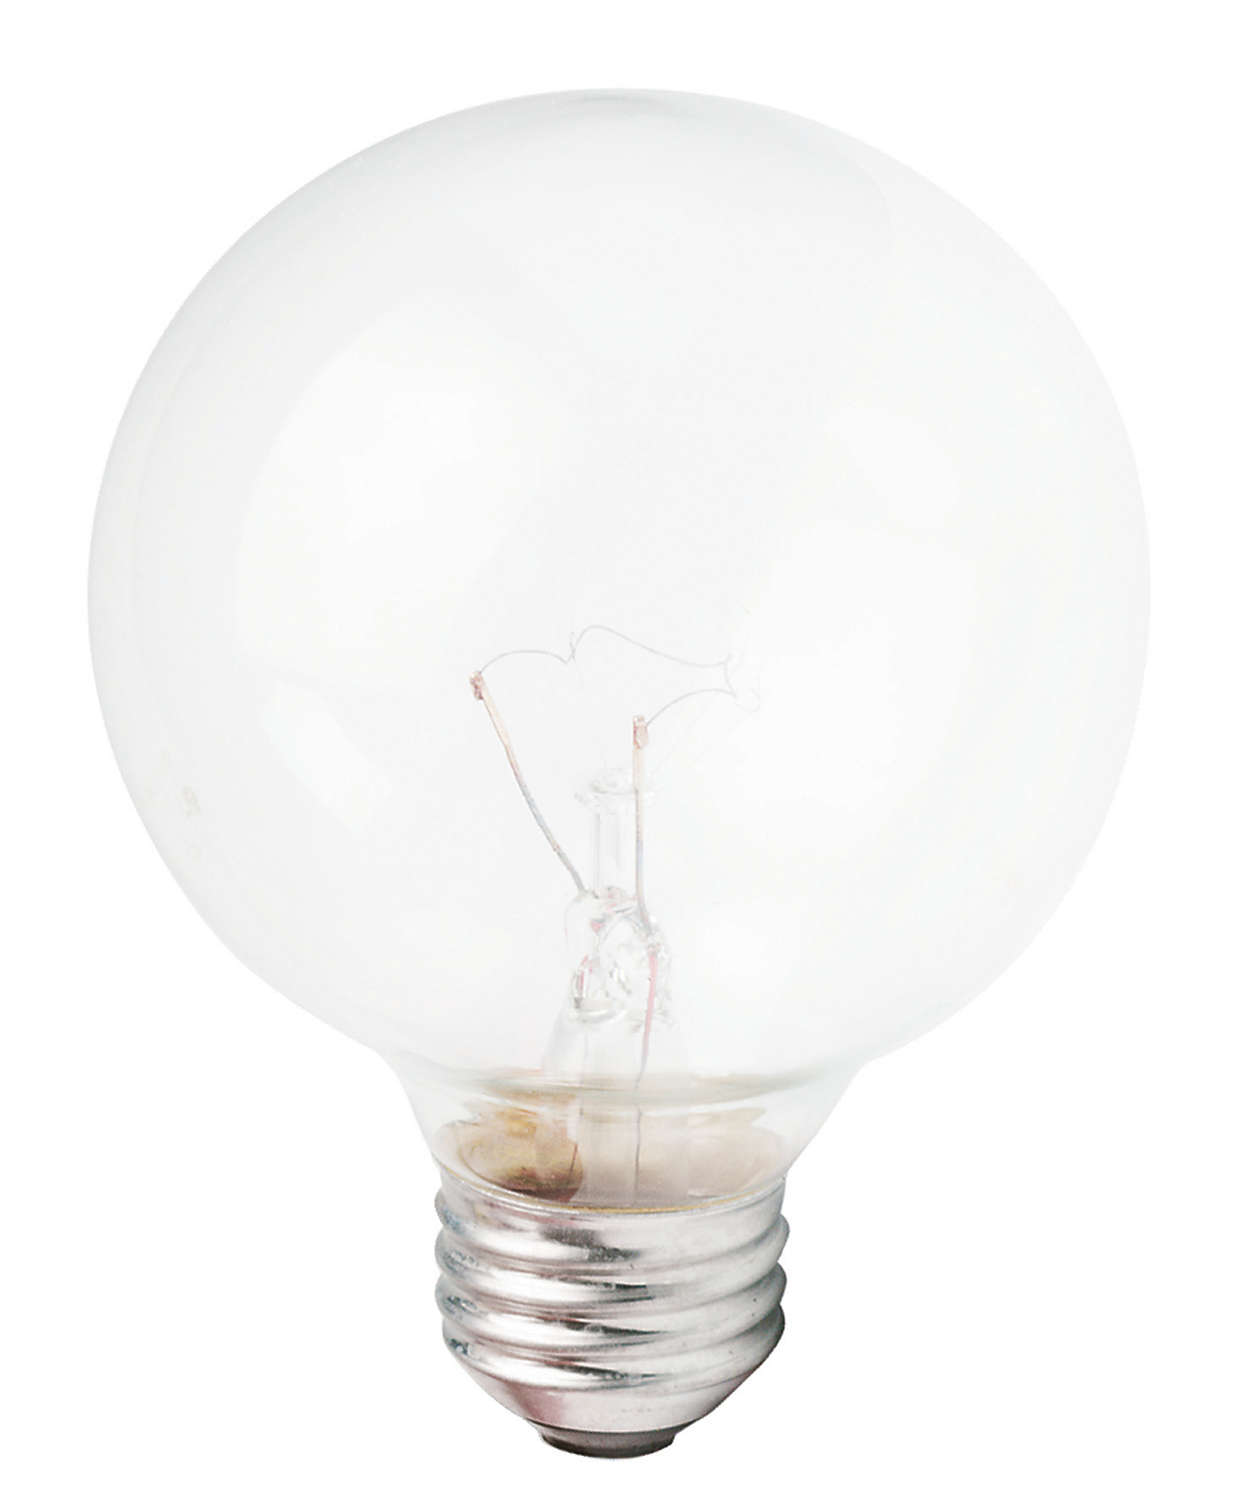 Brighten your home with infinite possibilities